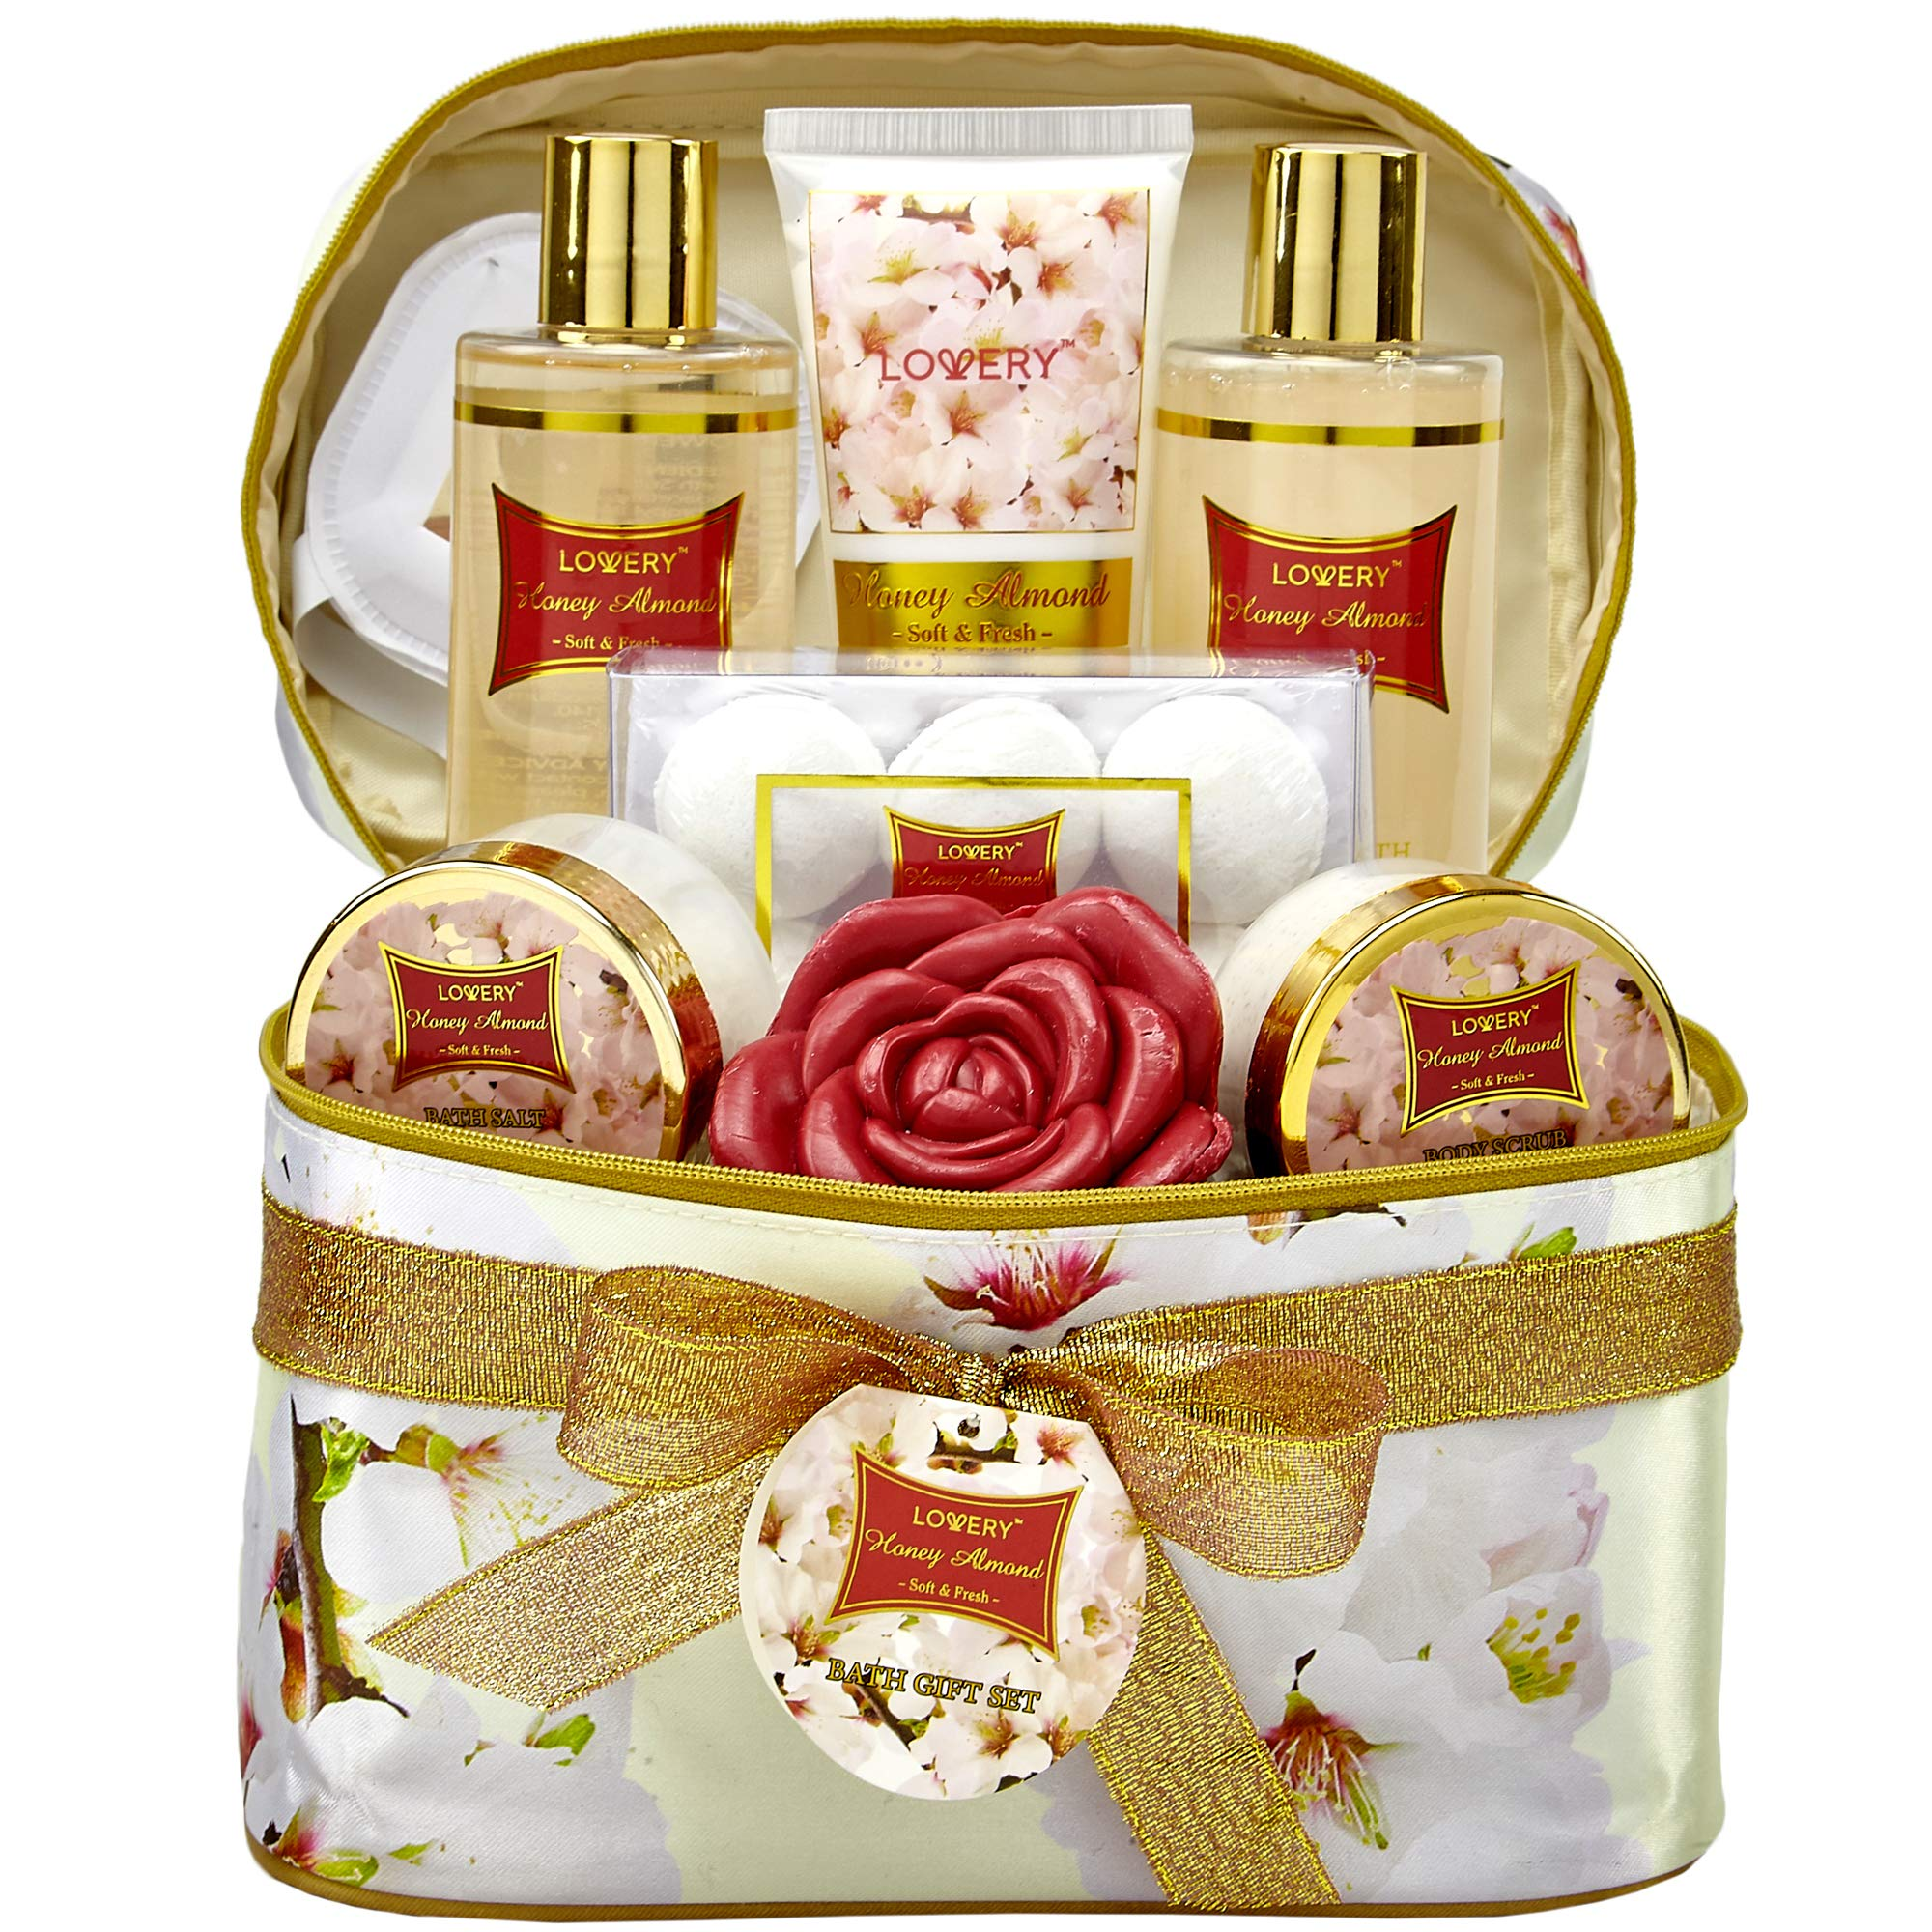 Bath and Body Gift Basket For Women - Honey Almond Home Spa Set with Fragrant Lotions, 6 Bath Bombs, Reusable Travel Cosmetics Bag with Mirror and More - 14 Piece Set